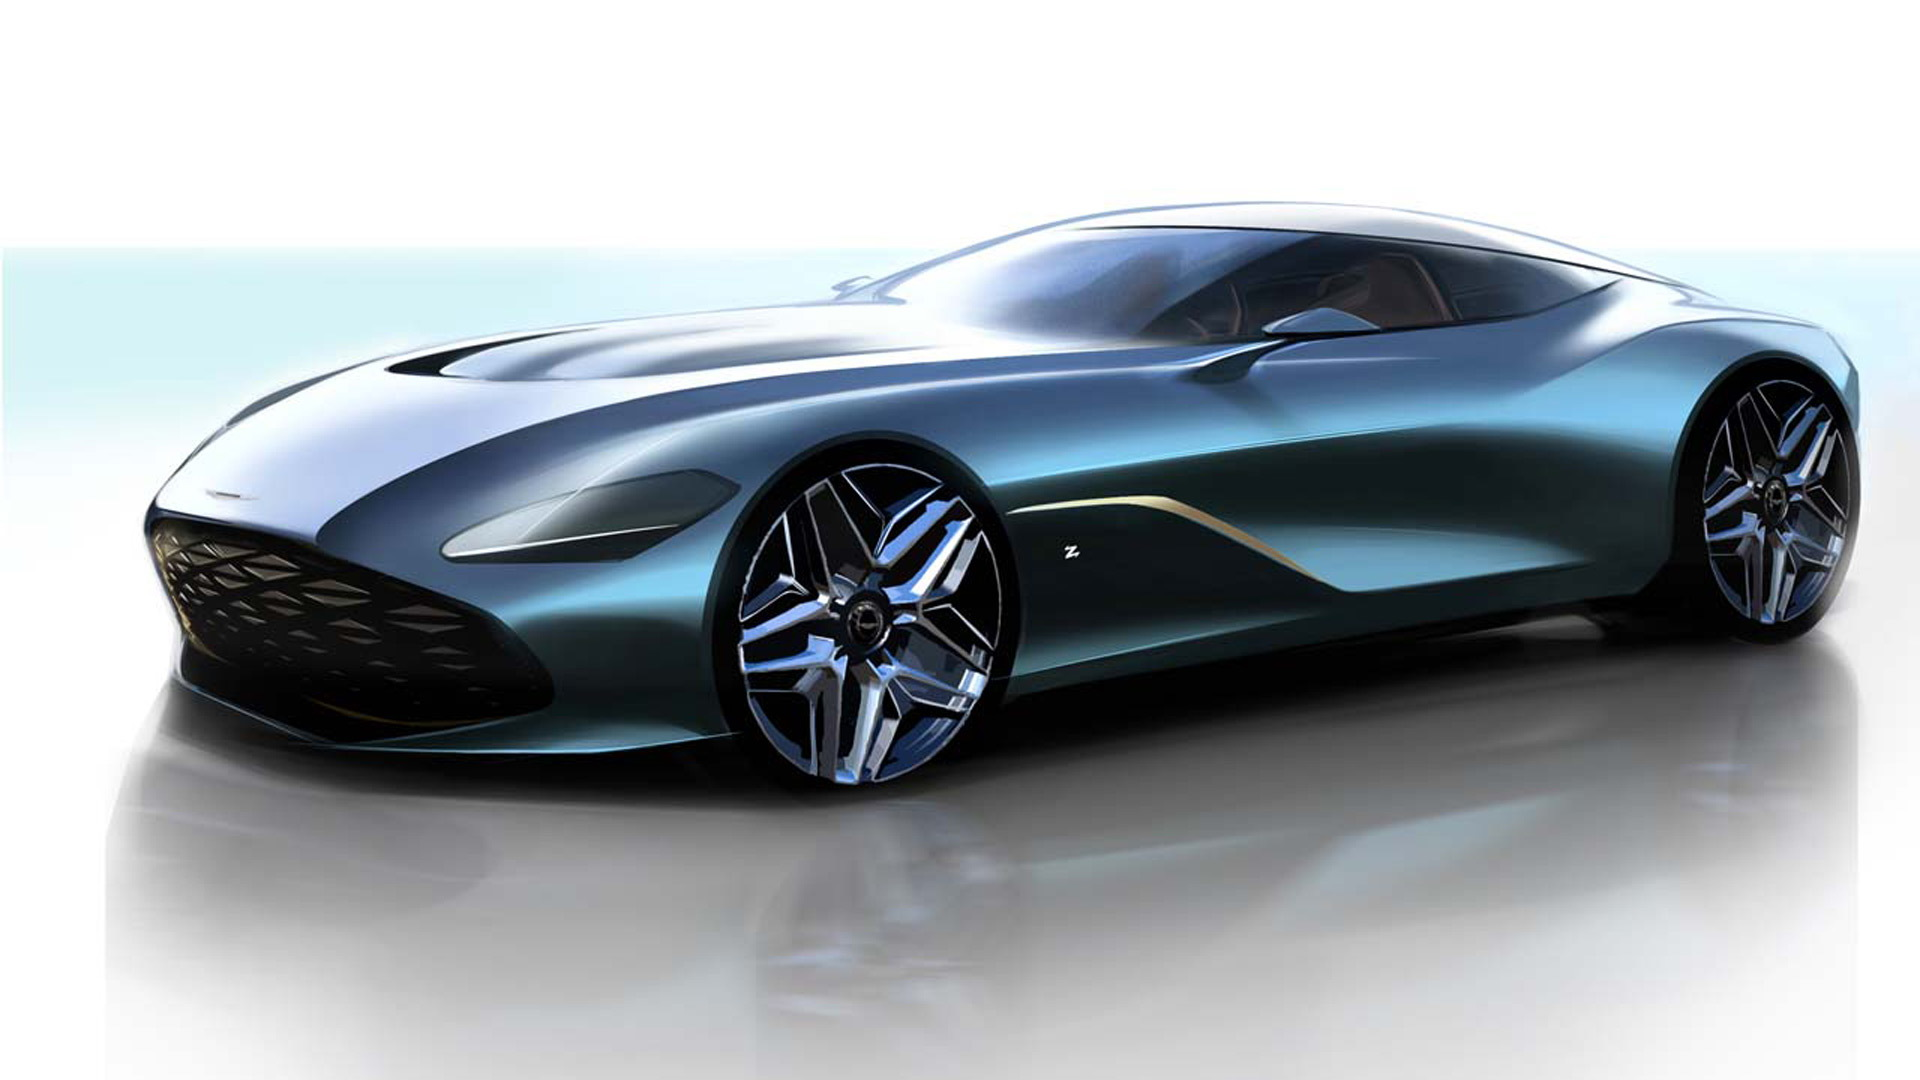 Aston Martin DBS GT Zagato - first sketches revealed